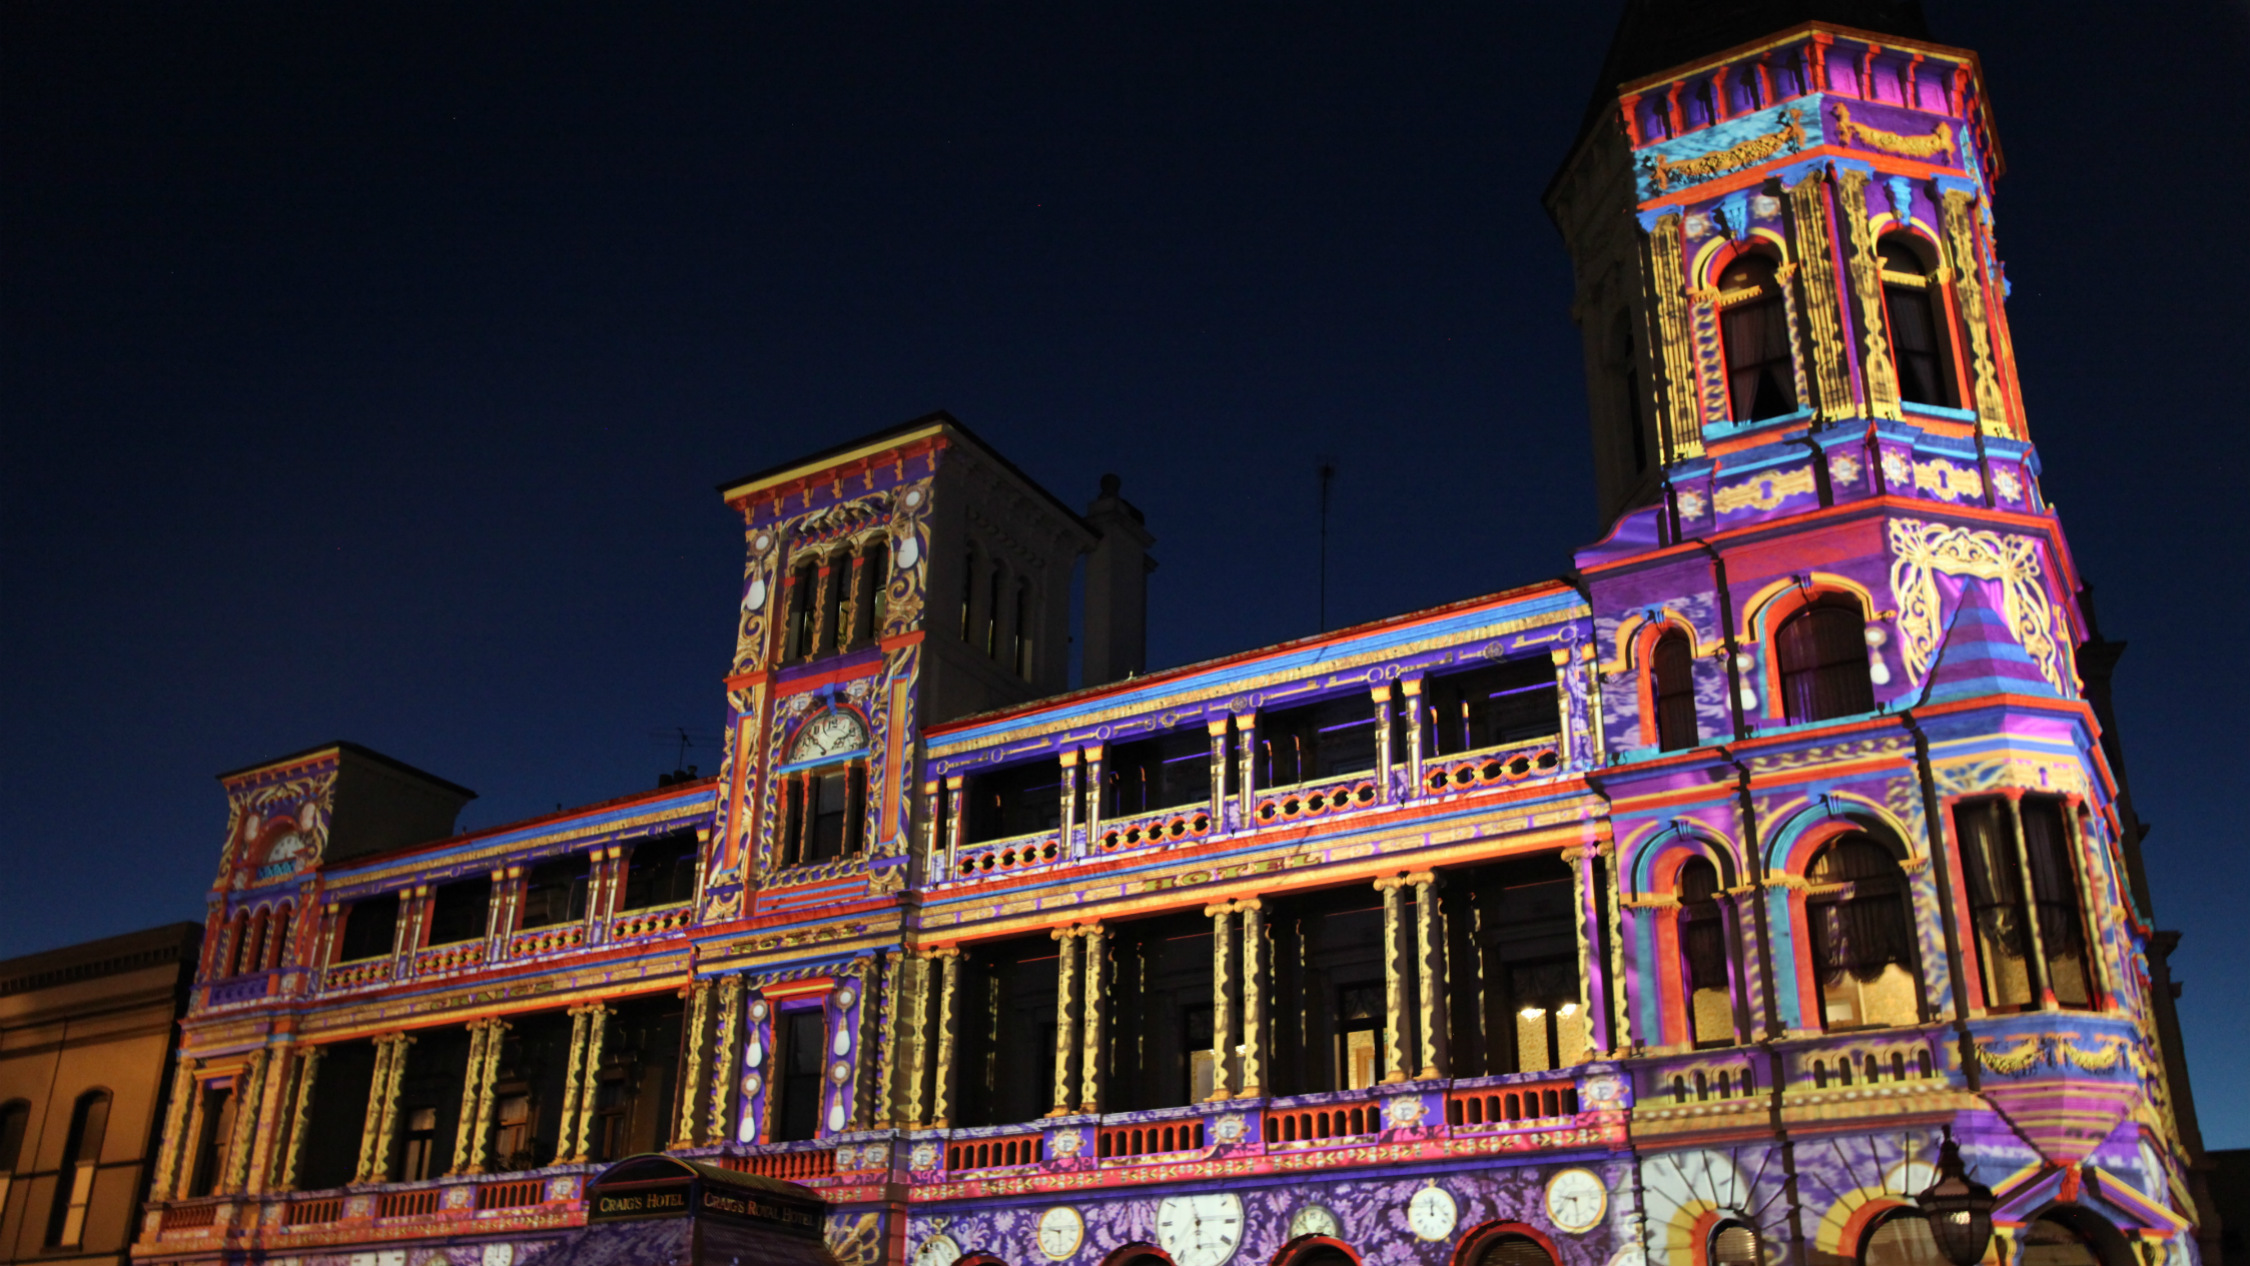 Craig's Hotel in Ballarat overlaid with colourful projection art as part of White Night Ballarat